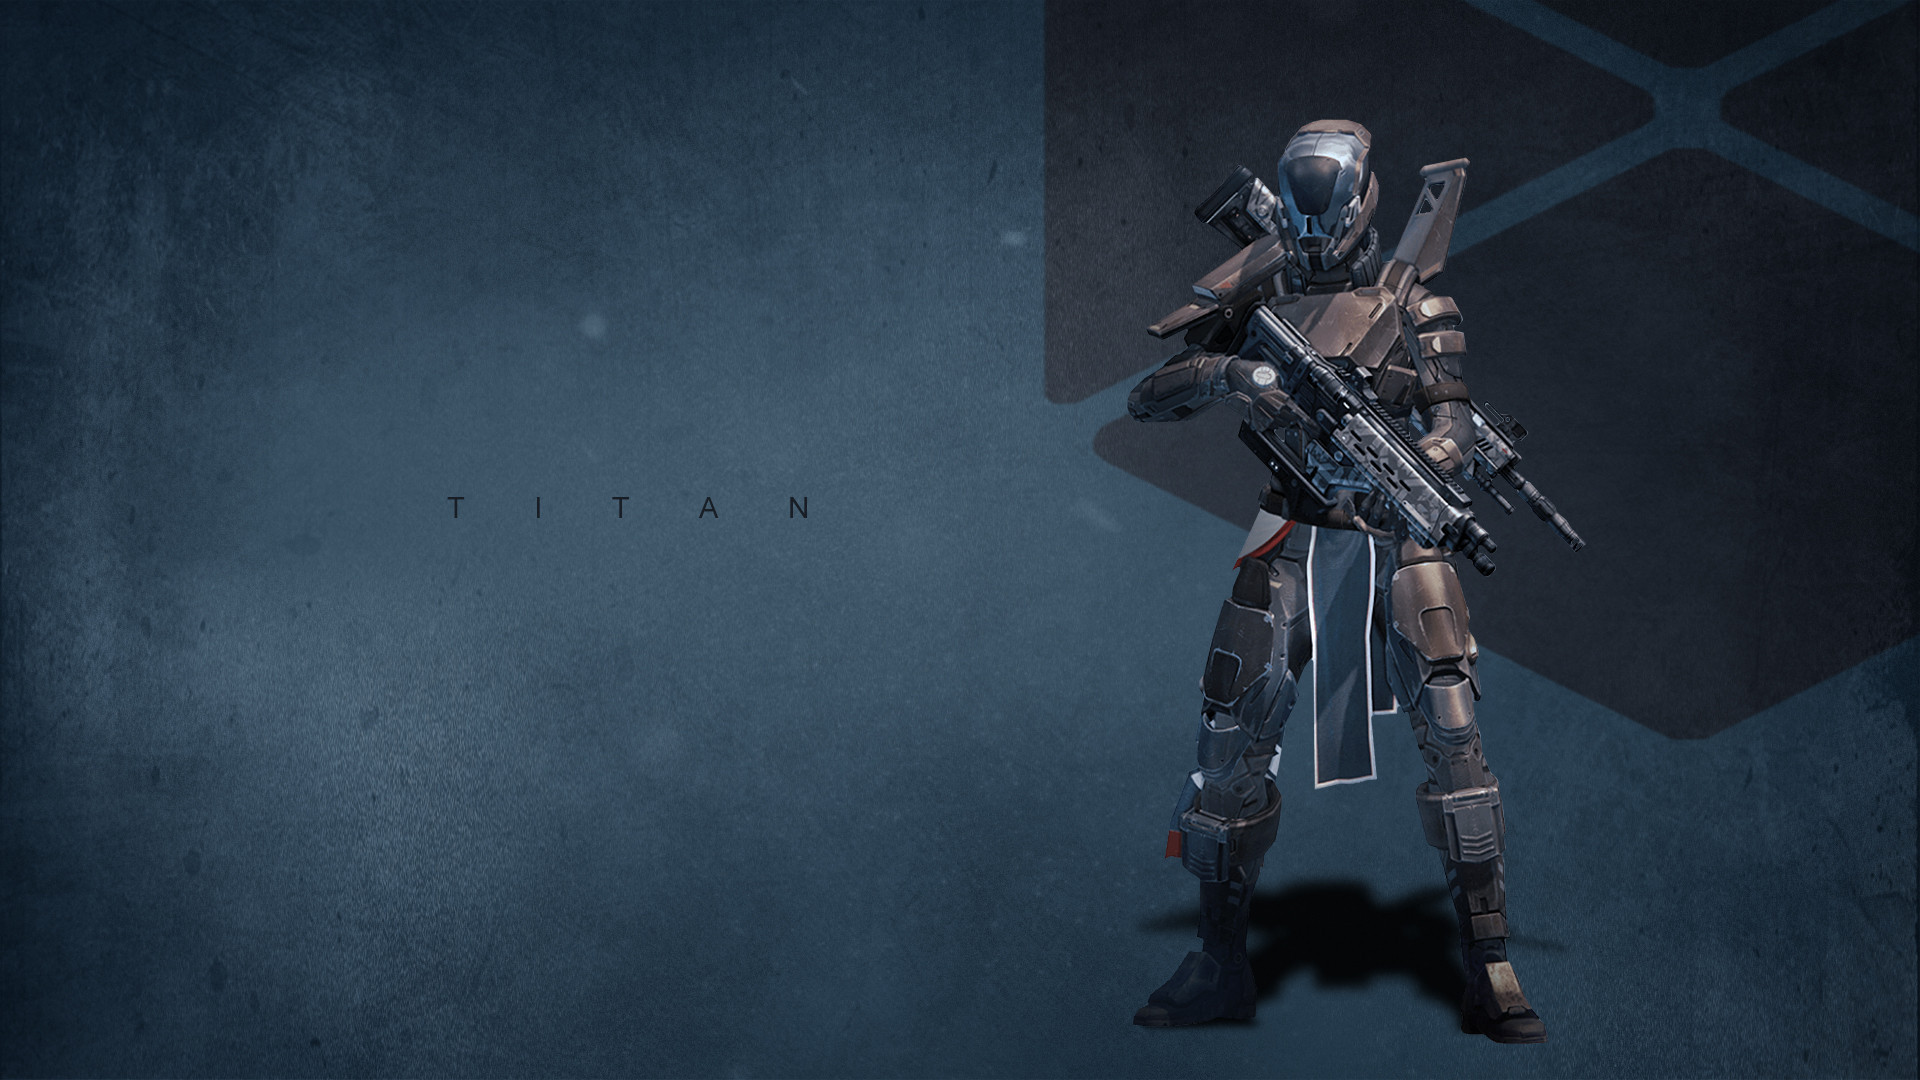 50 amazing destiny hd wallpapers for desktop free